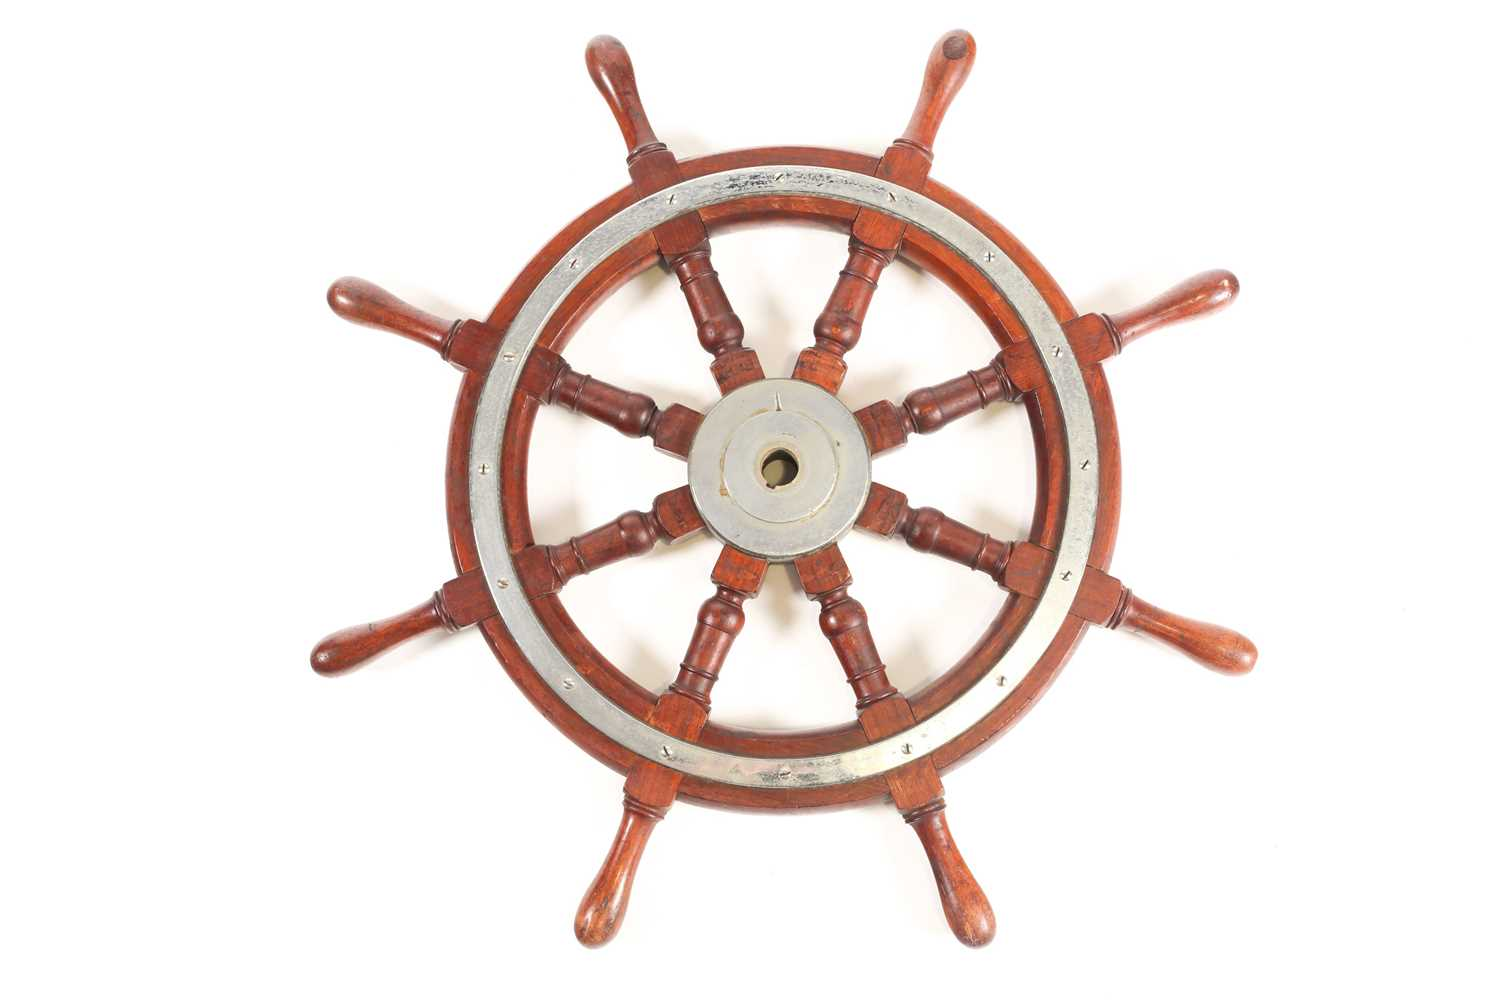 A teak wood ship's wheel with turned spindles and chromium-plated fitments. 77 cm diameter.Condition